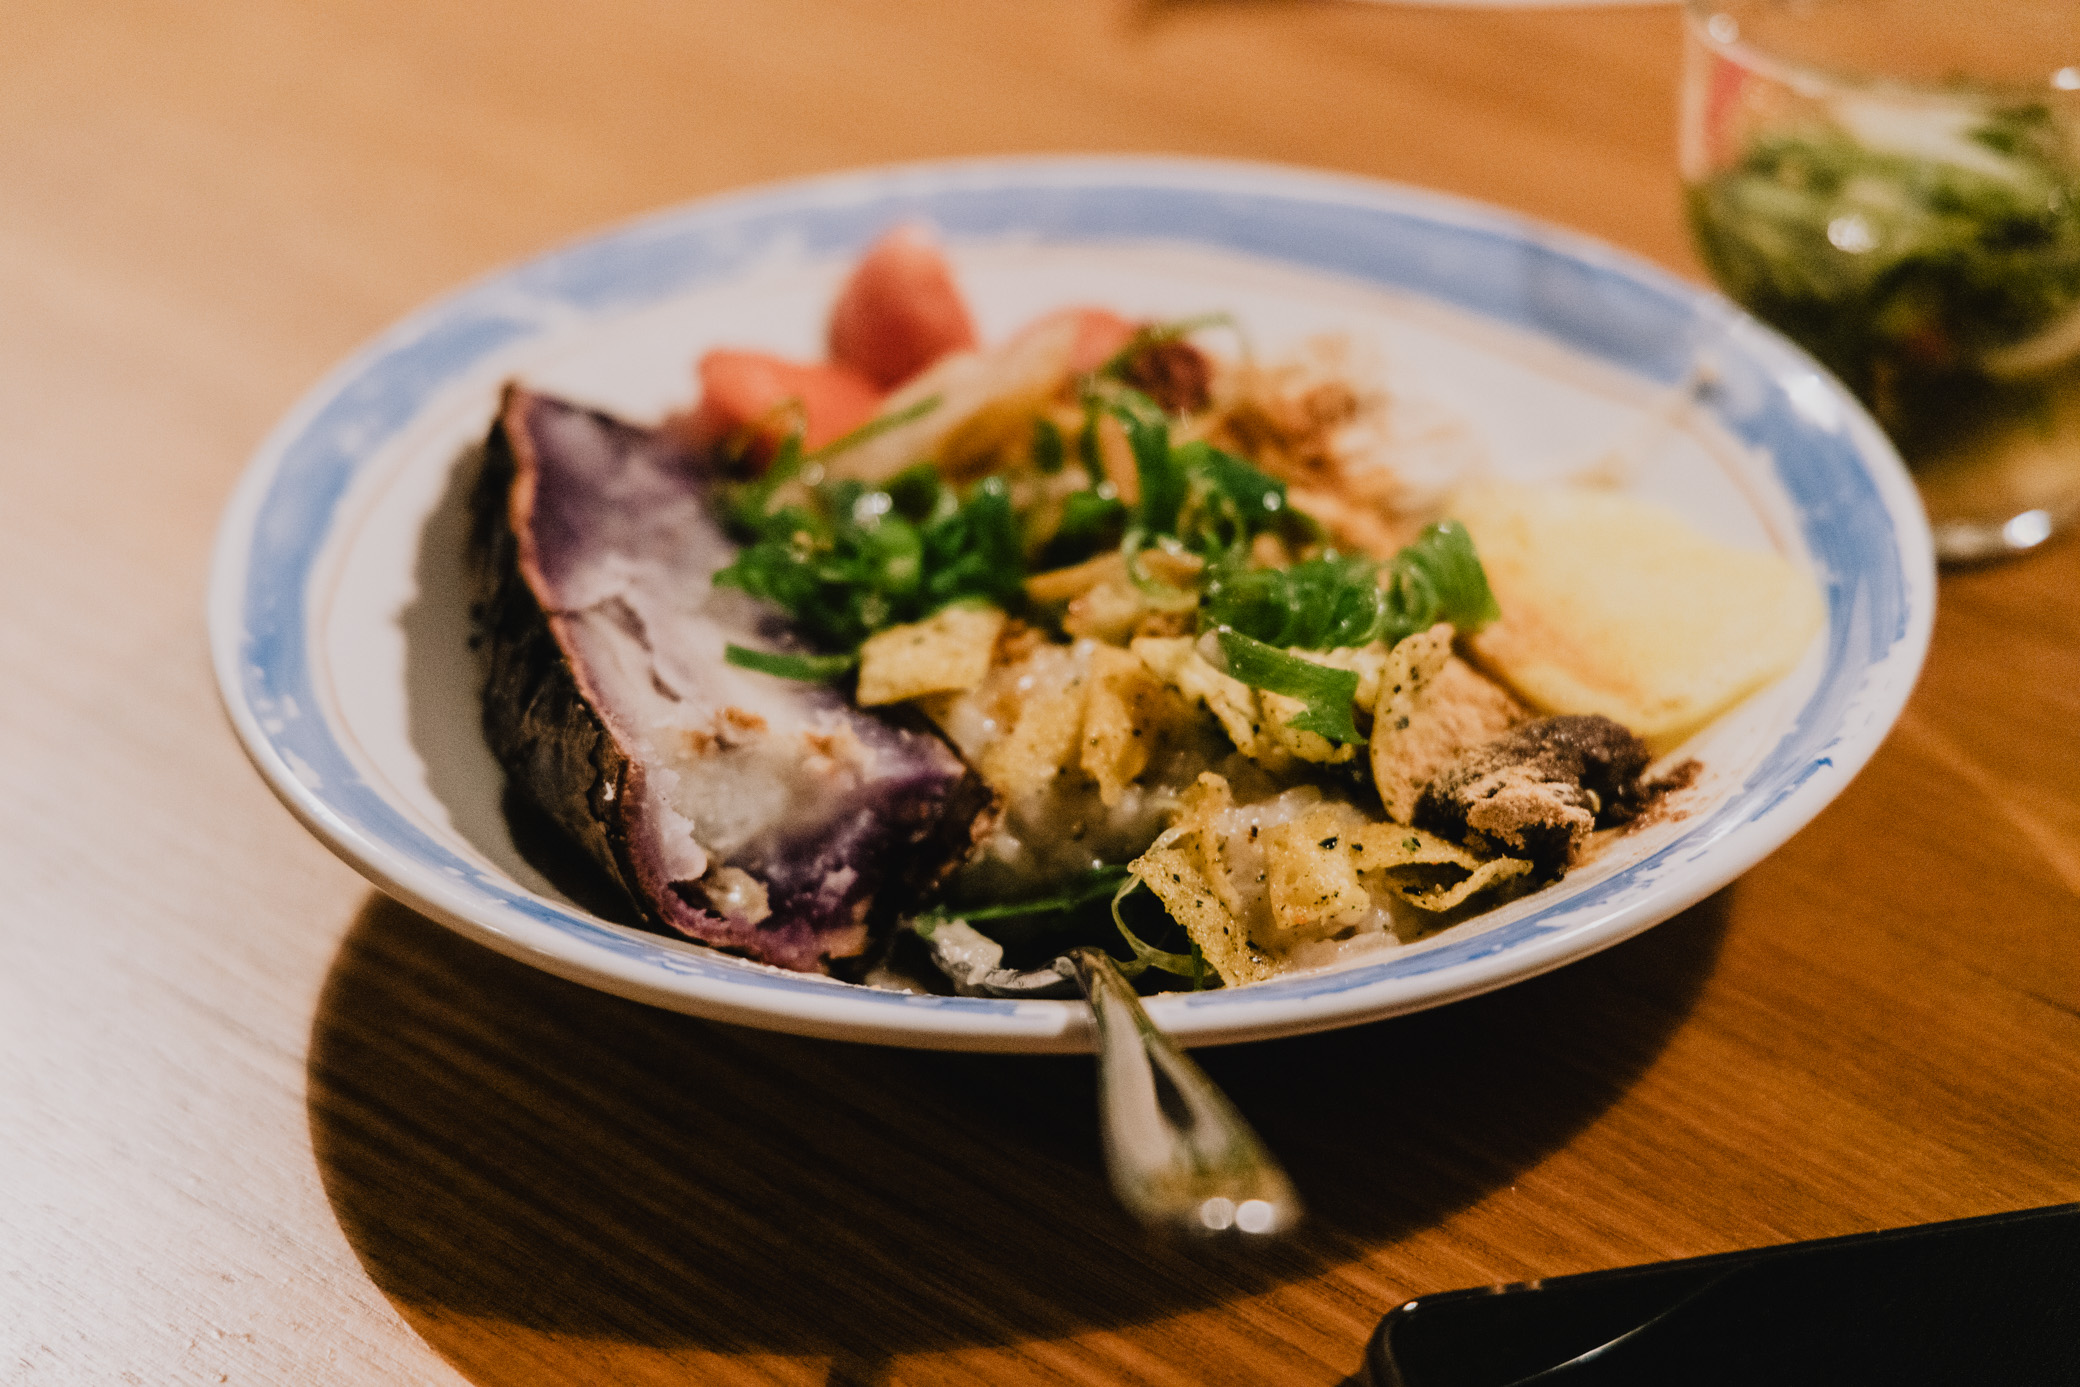 image of a bowl with savoury porridge featuring yam and fermented foods